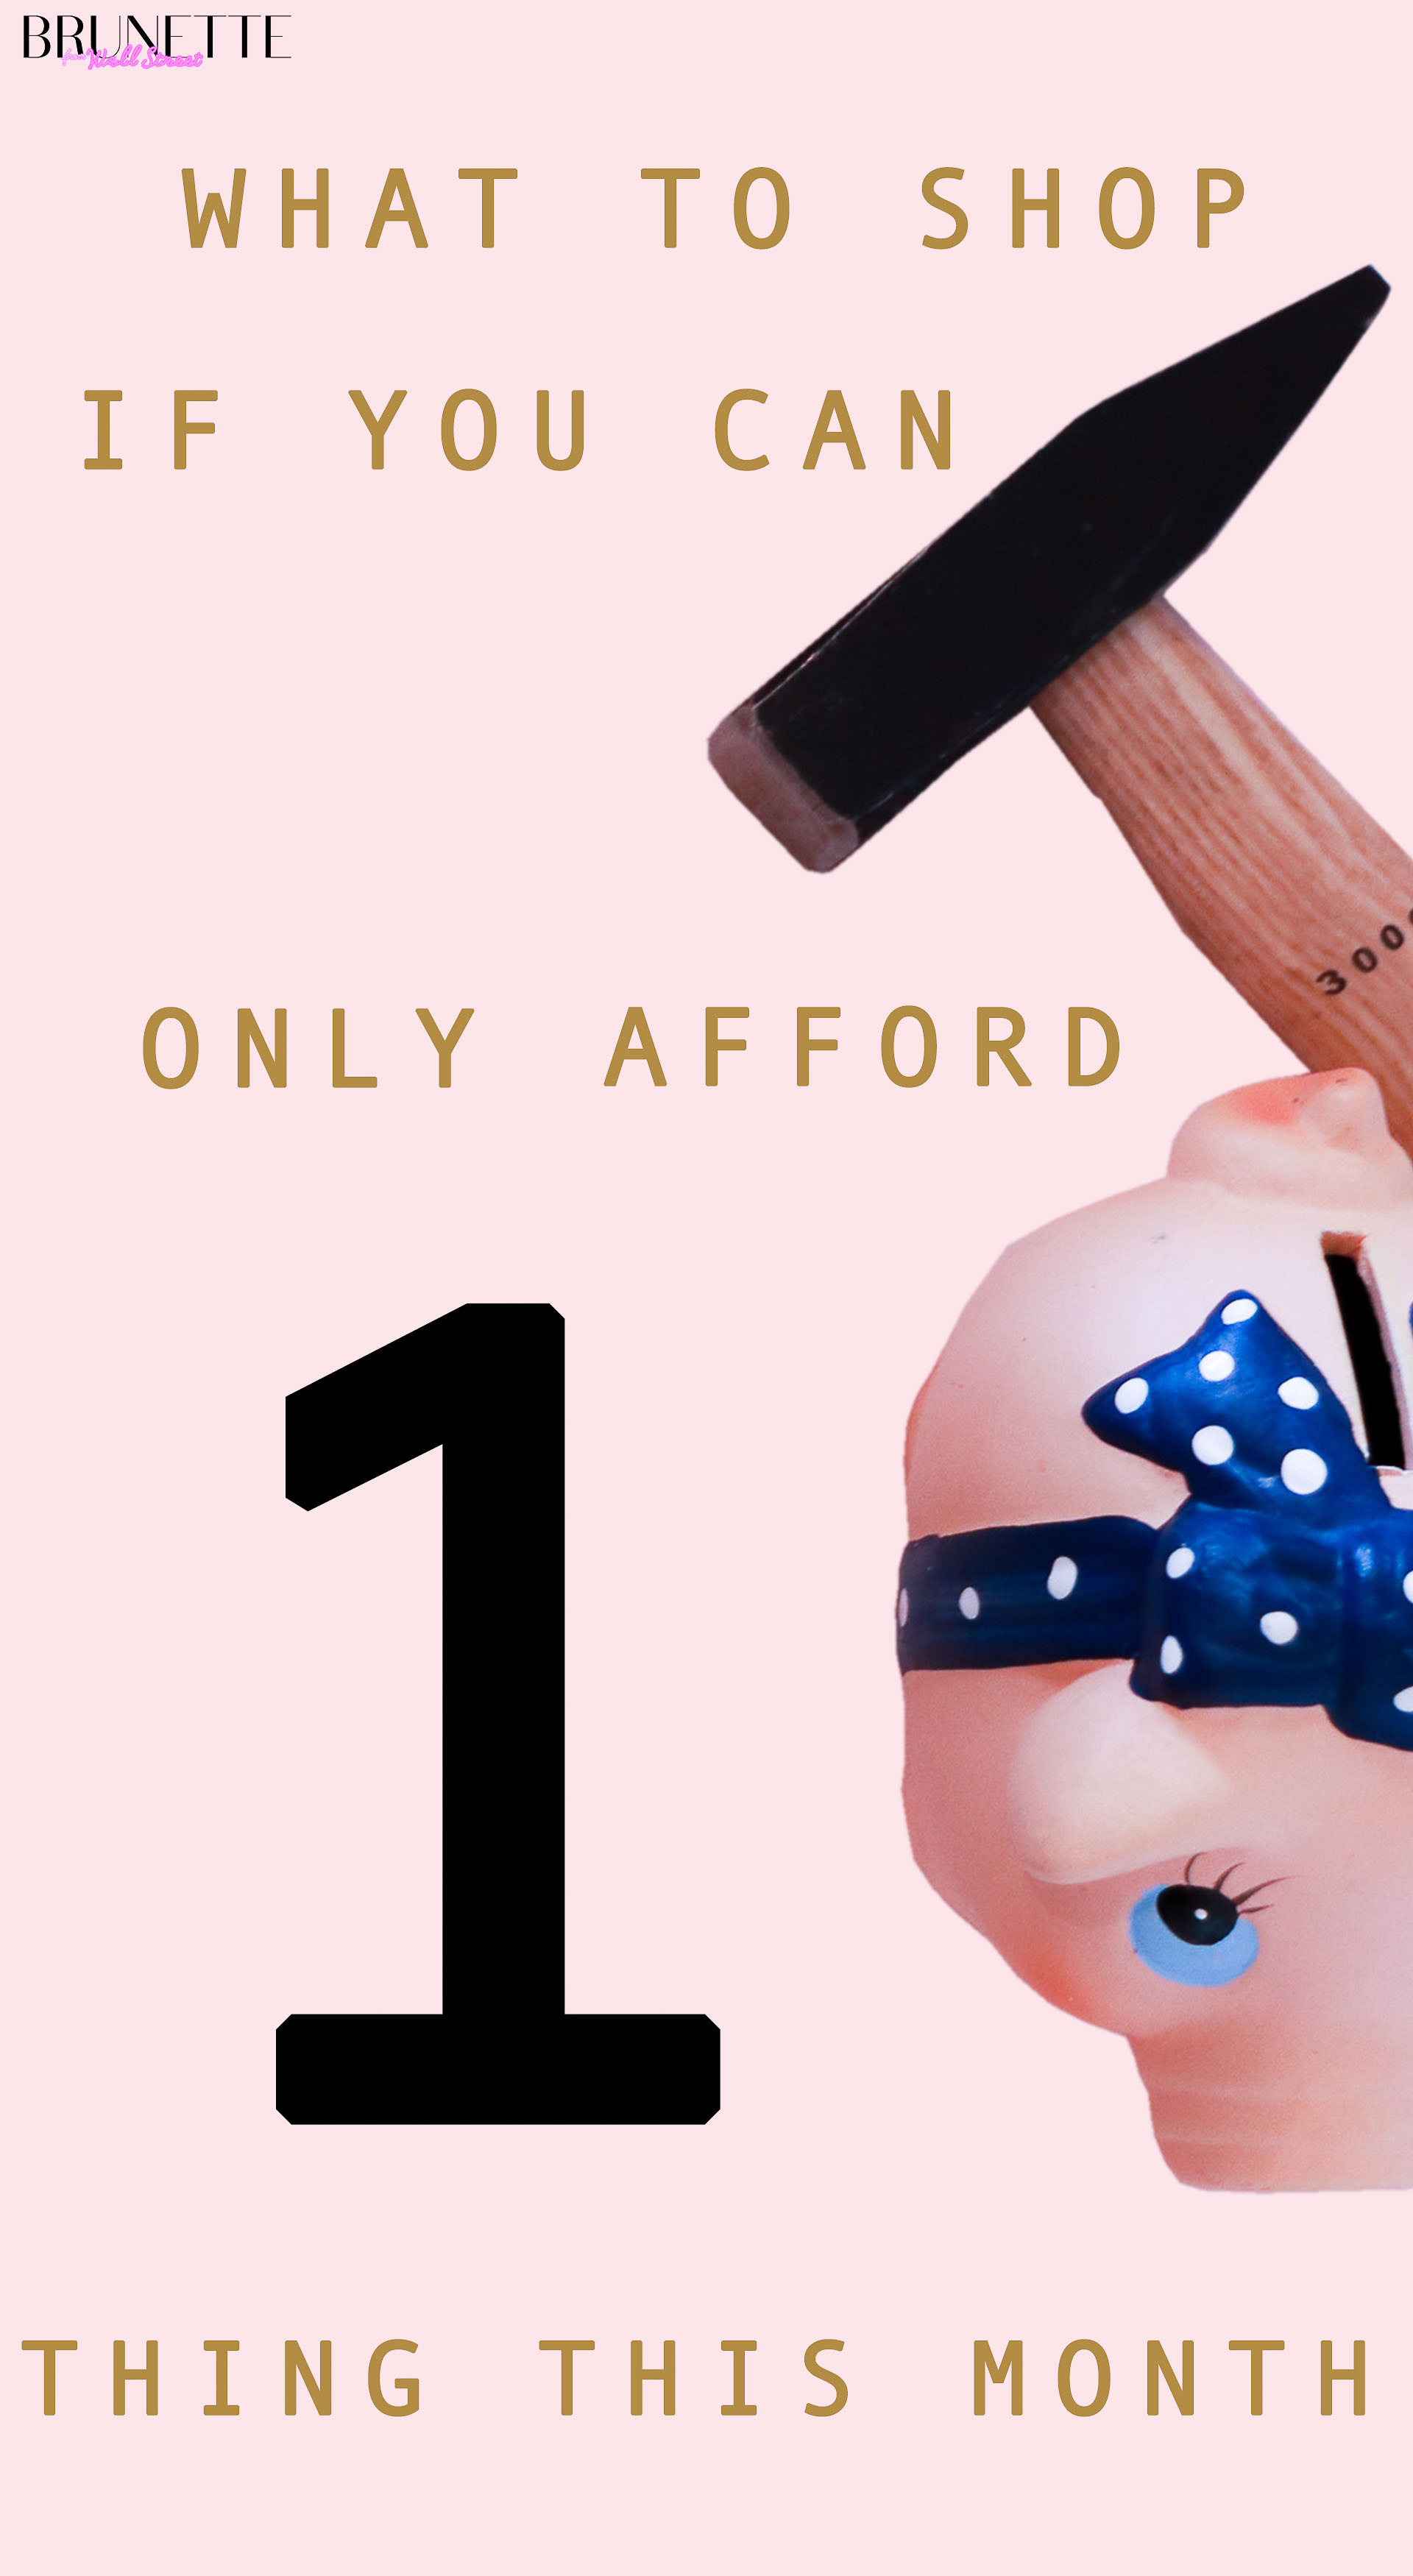 Hammer and piggy bank with text overlay What to shop if you can only afford 1 thing this month